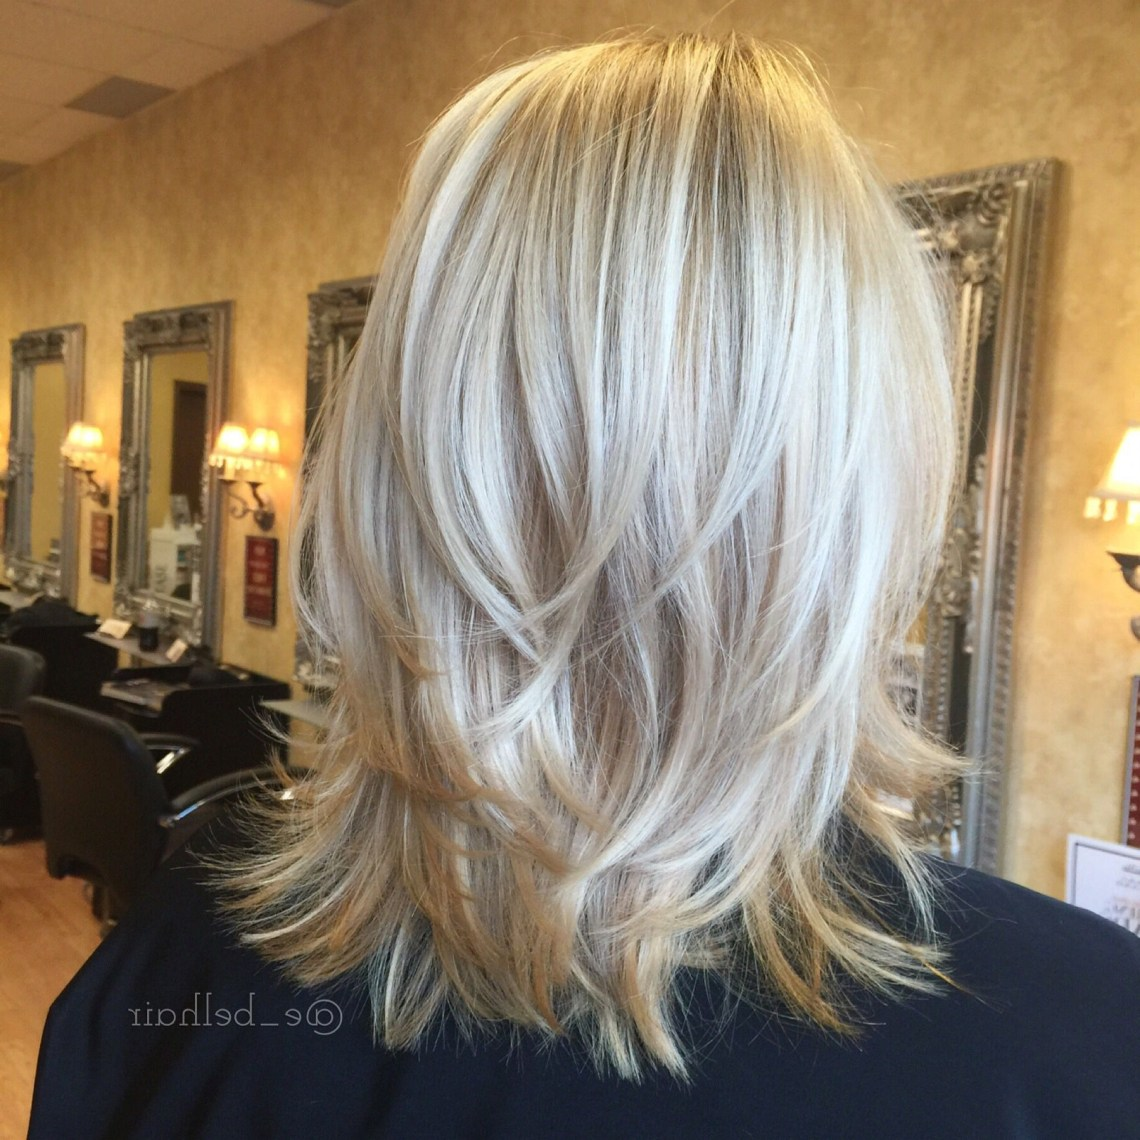 Pin On Hairemily Belcher Cute Blonde Hairstyles For Medium Length Hair